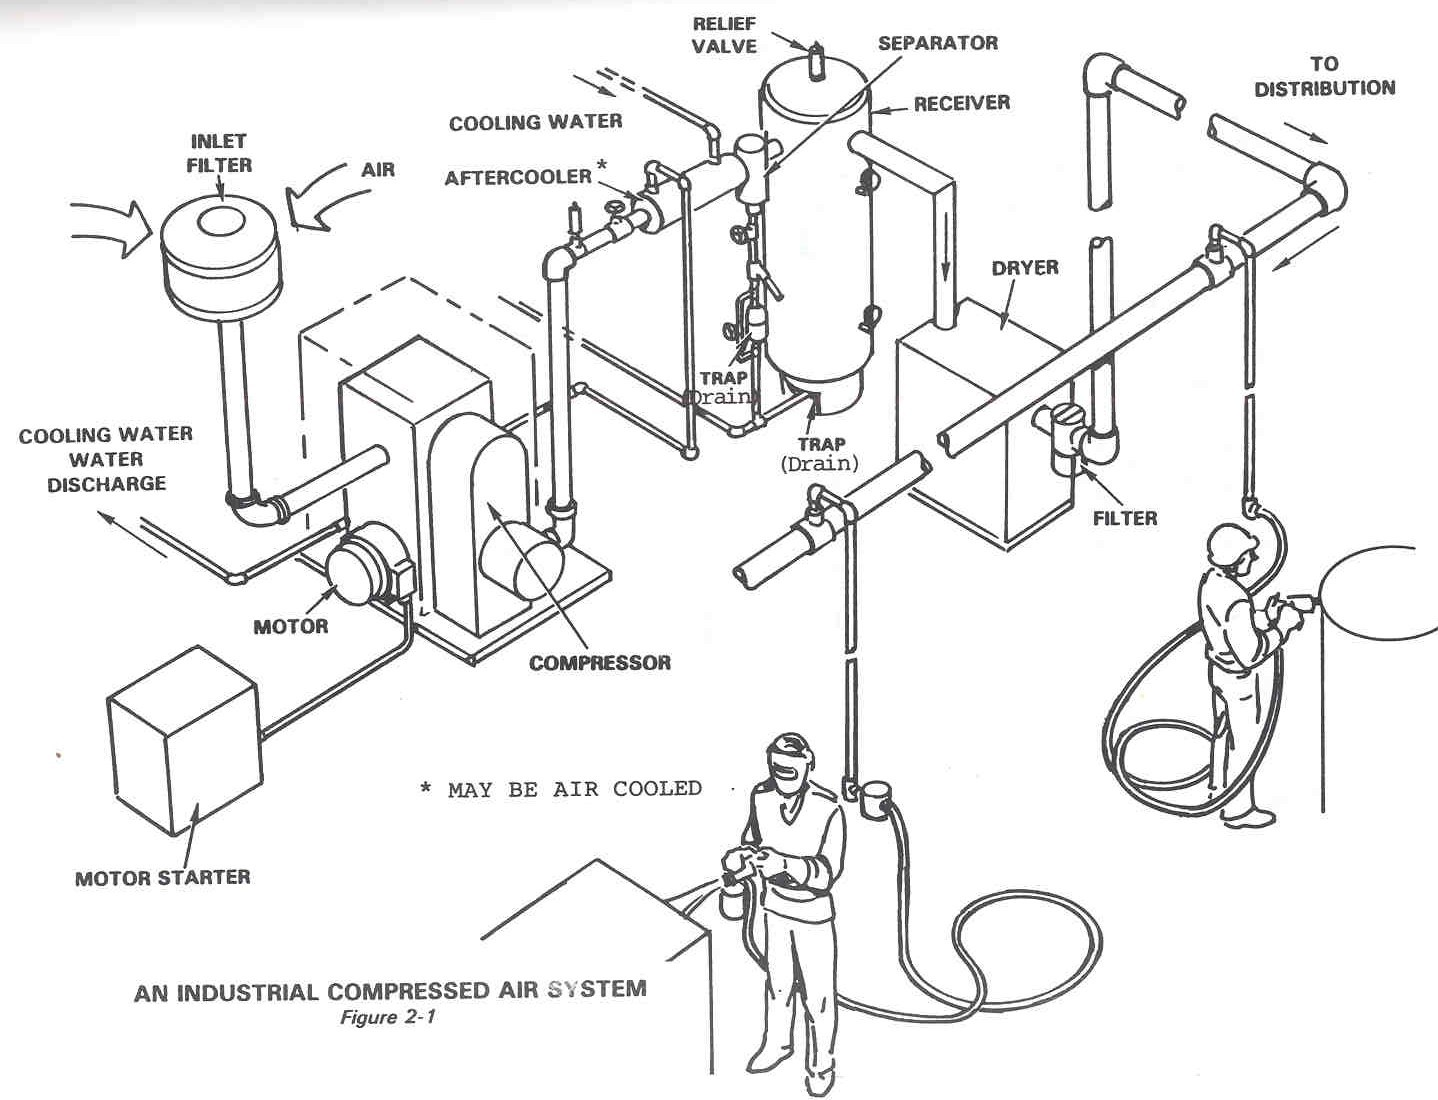 Technical Materials : COMPRESSORS AND COMPRESSED AIR